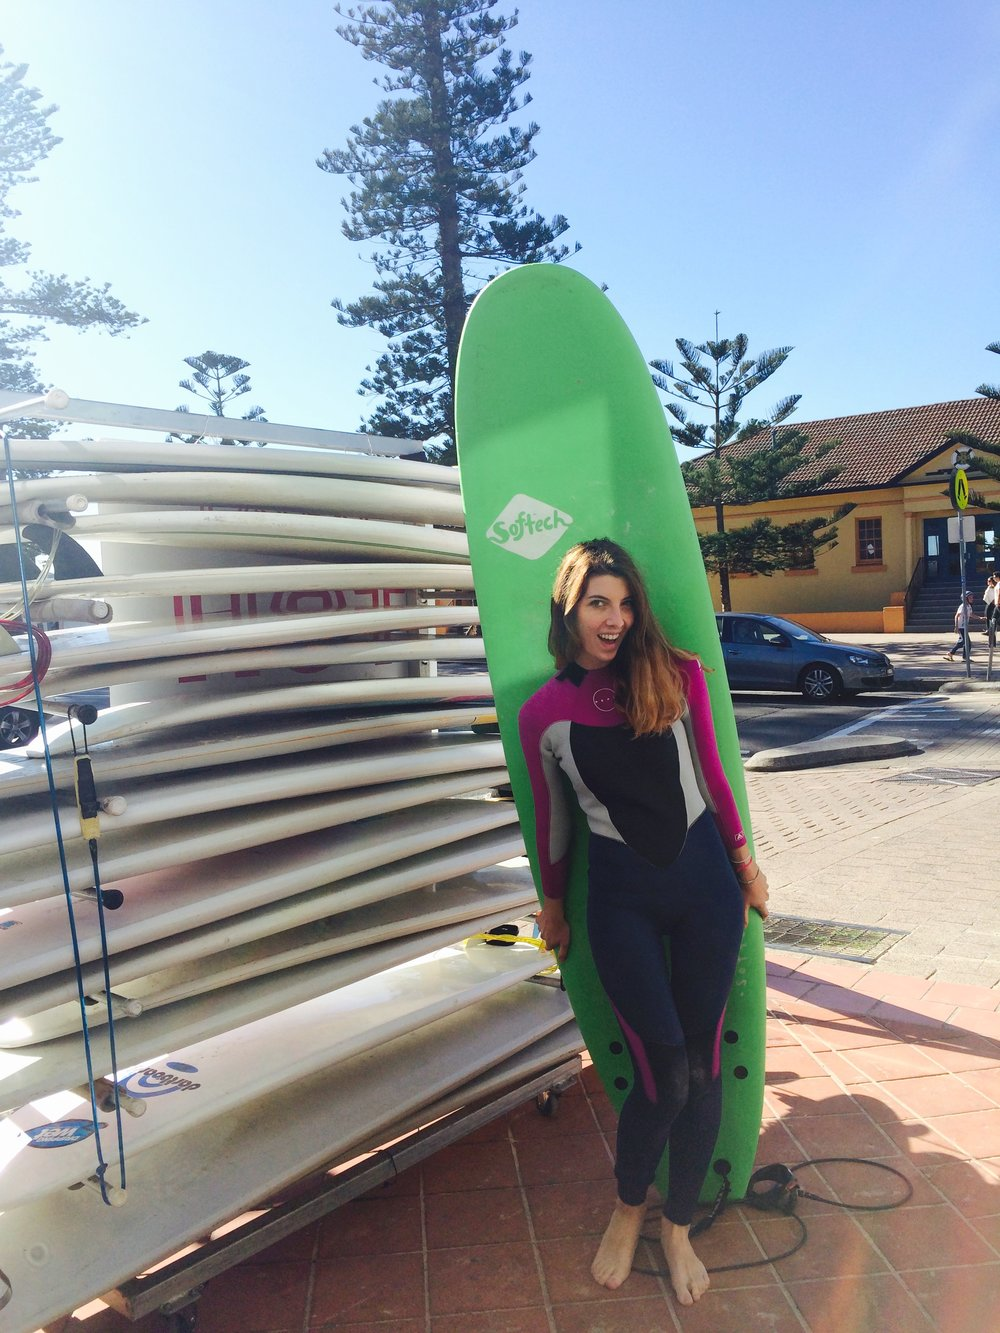 Surfing on a winter day in Manly, I did it!